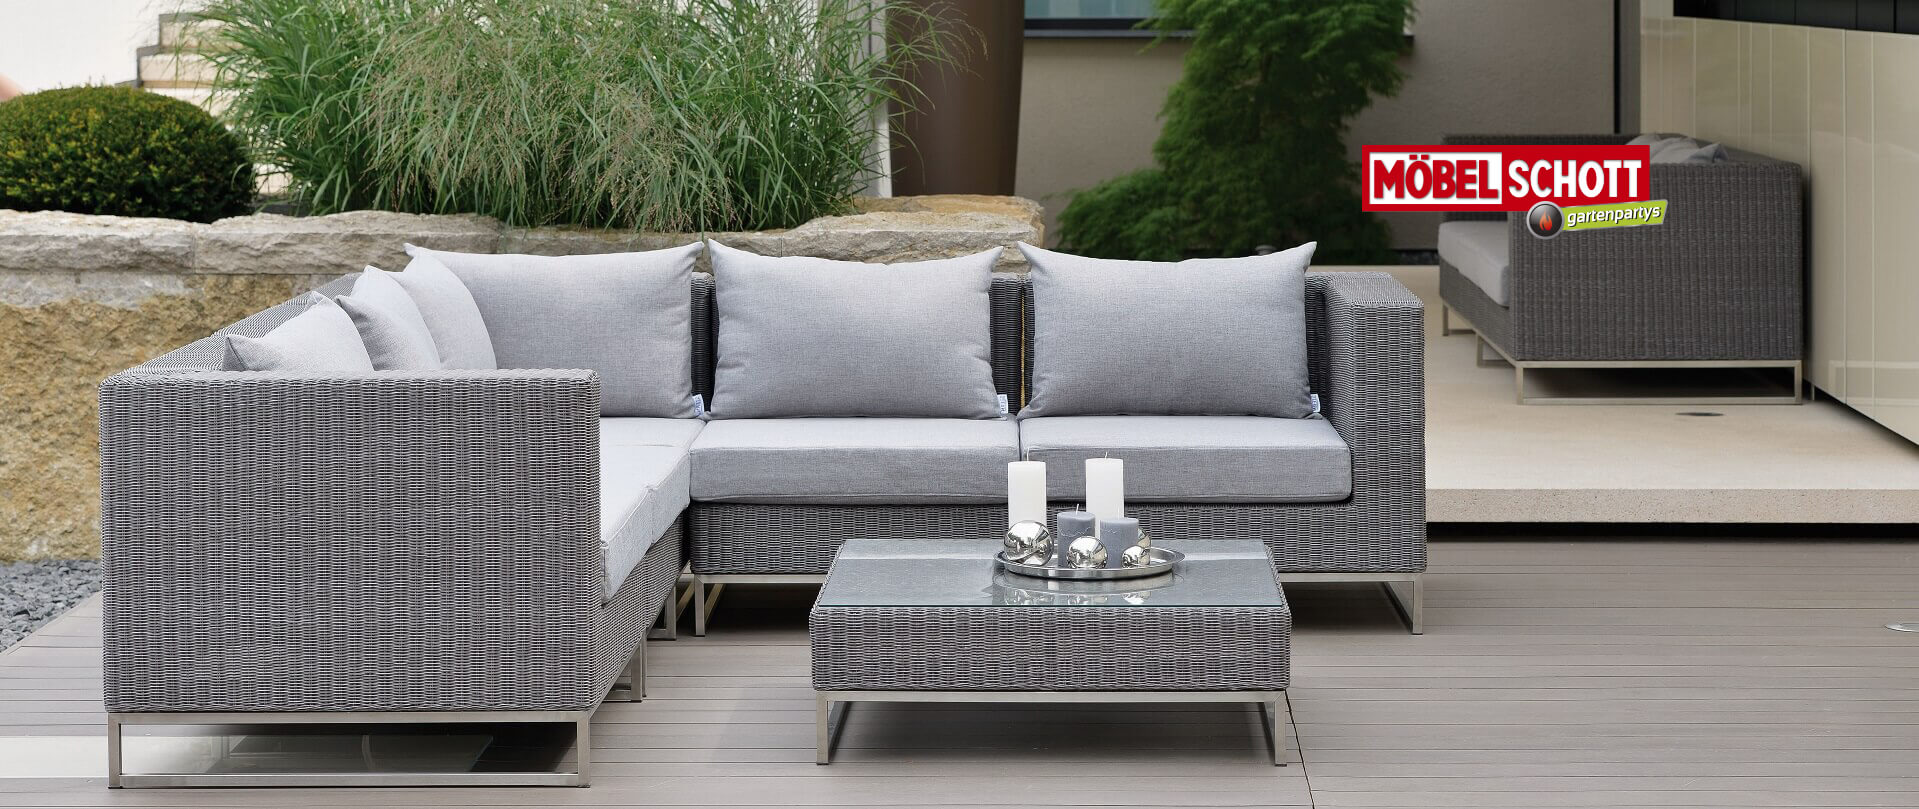 couch fr draussen garten terrasse with couch fr draussen simple eine minilounge fr zwei with. Black Bedroom Furniture Sets. Home Design Ideas